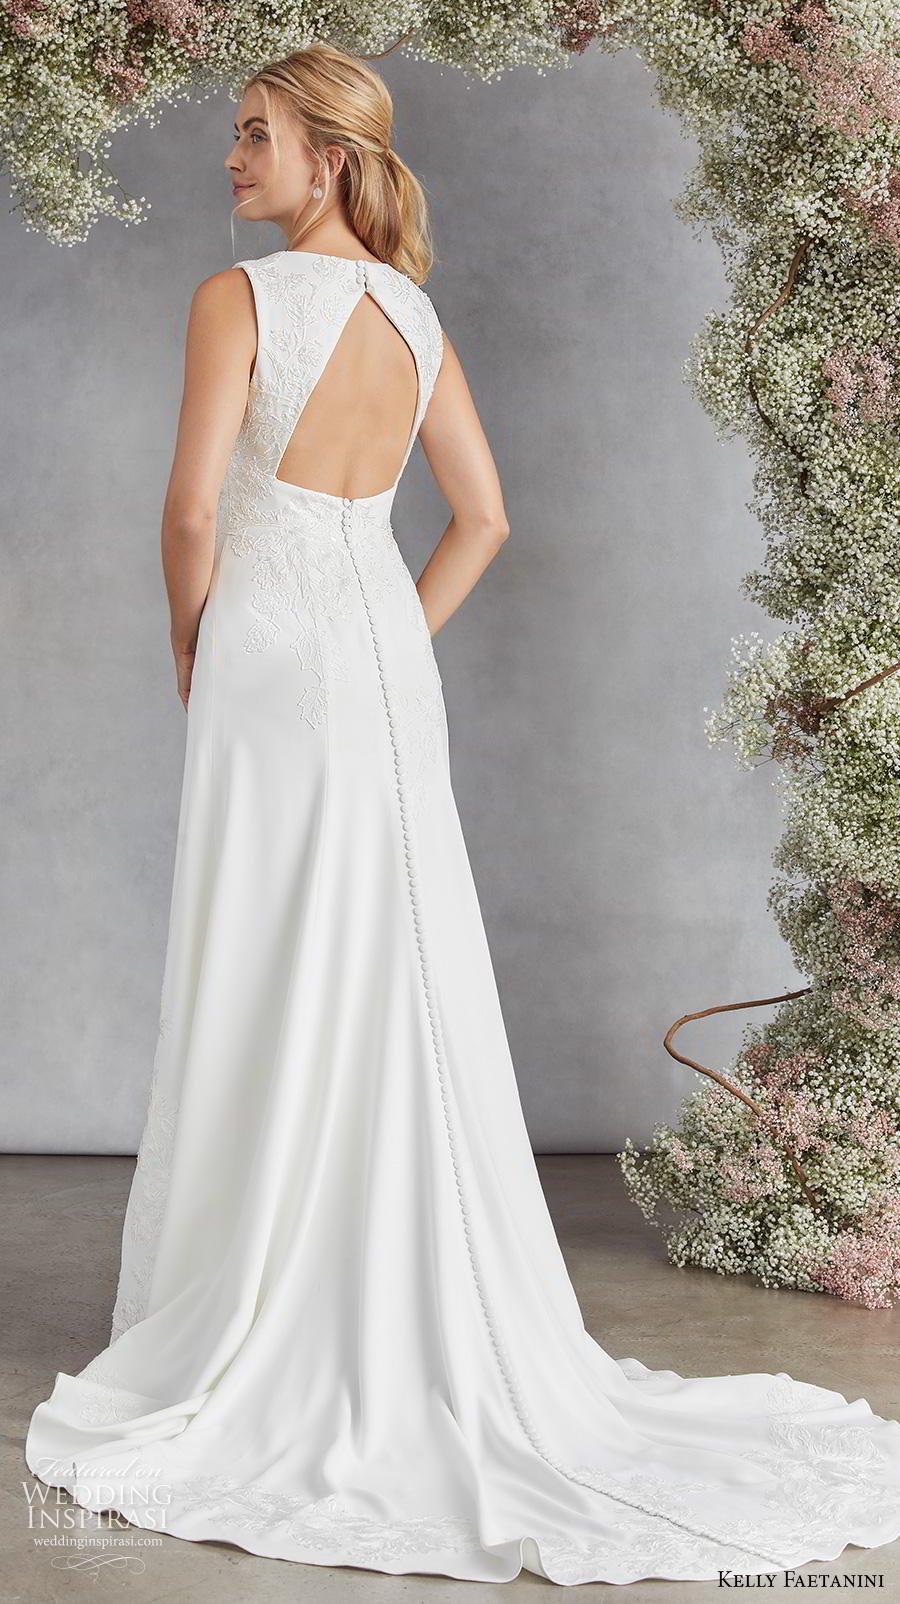 kelly faetanini fall 2020 bridal sleeveless deep plunging v neck light embellishment romantic modified a  line wedding dress keyhole back medium train (4) bv